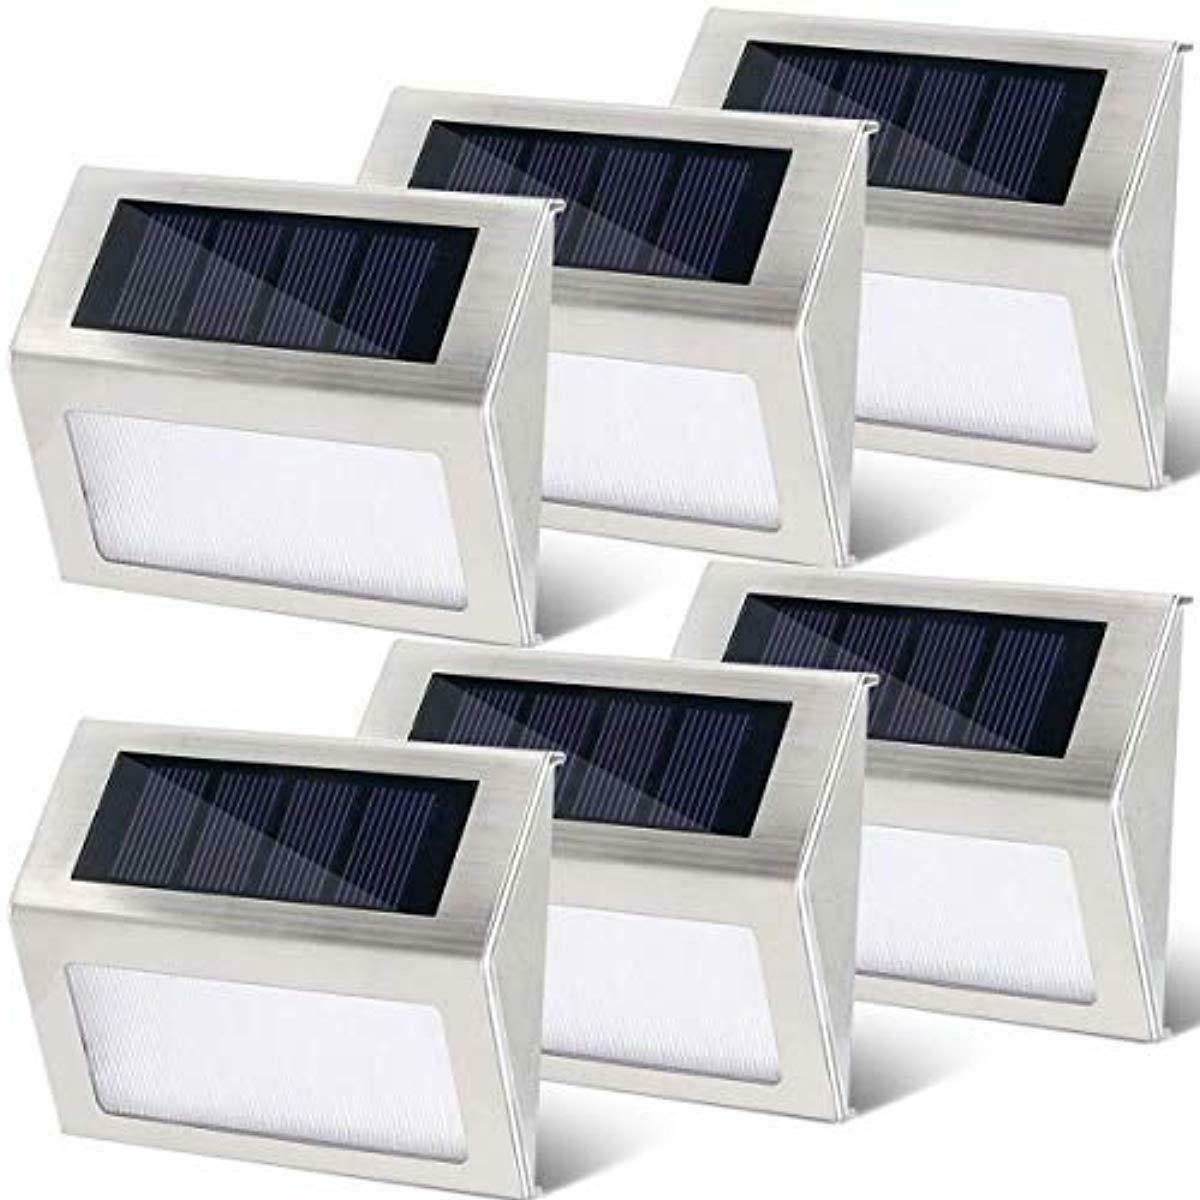 6 pack solar step deck lights stainless